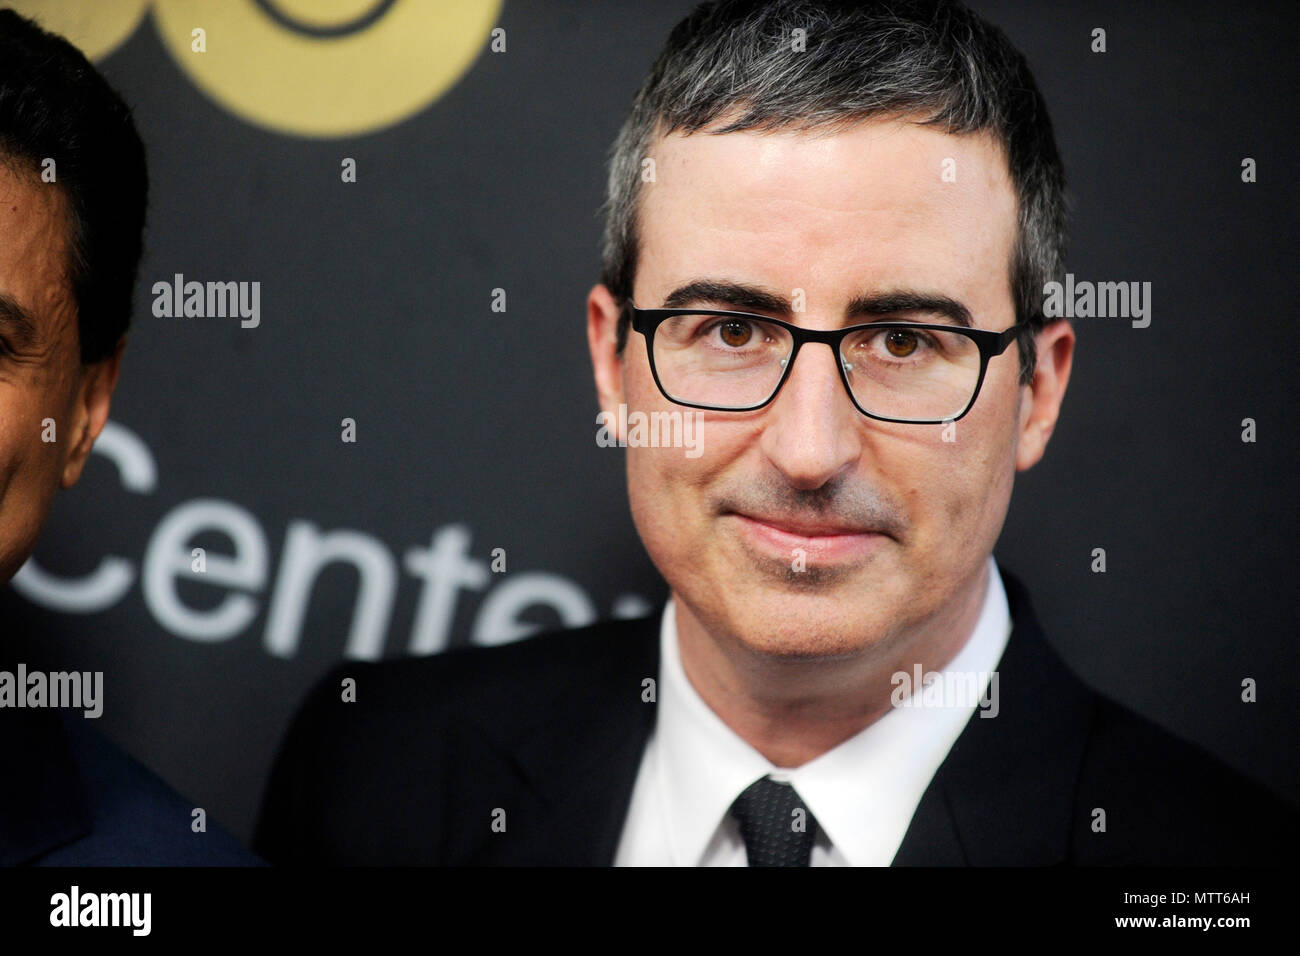 John Oliver attending the Lincoln Center American Songbook Gala 2018 at the Alice Tully Hall at Lincoln Center on May 29, 2018 in New York City. Stock Photo